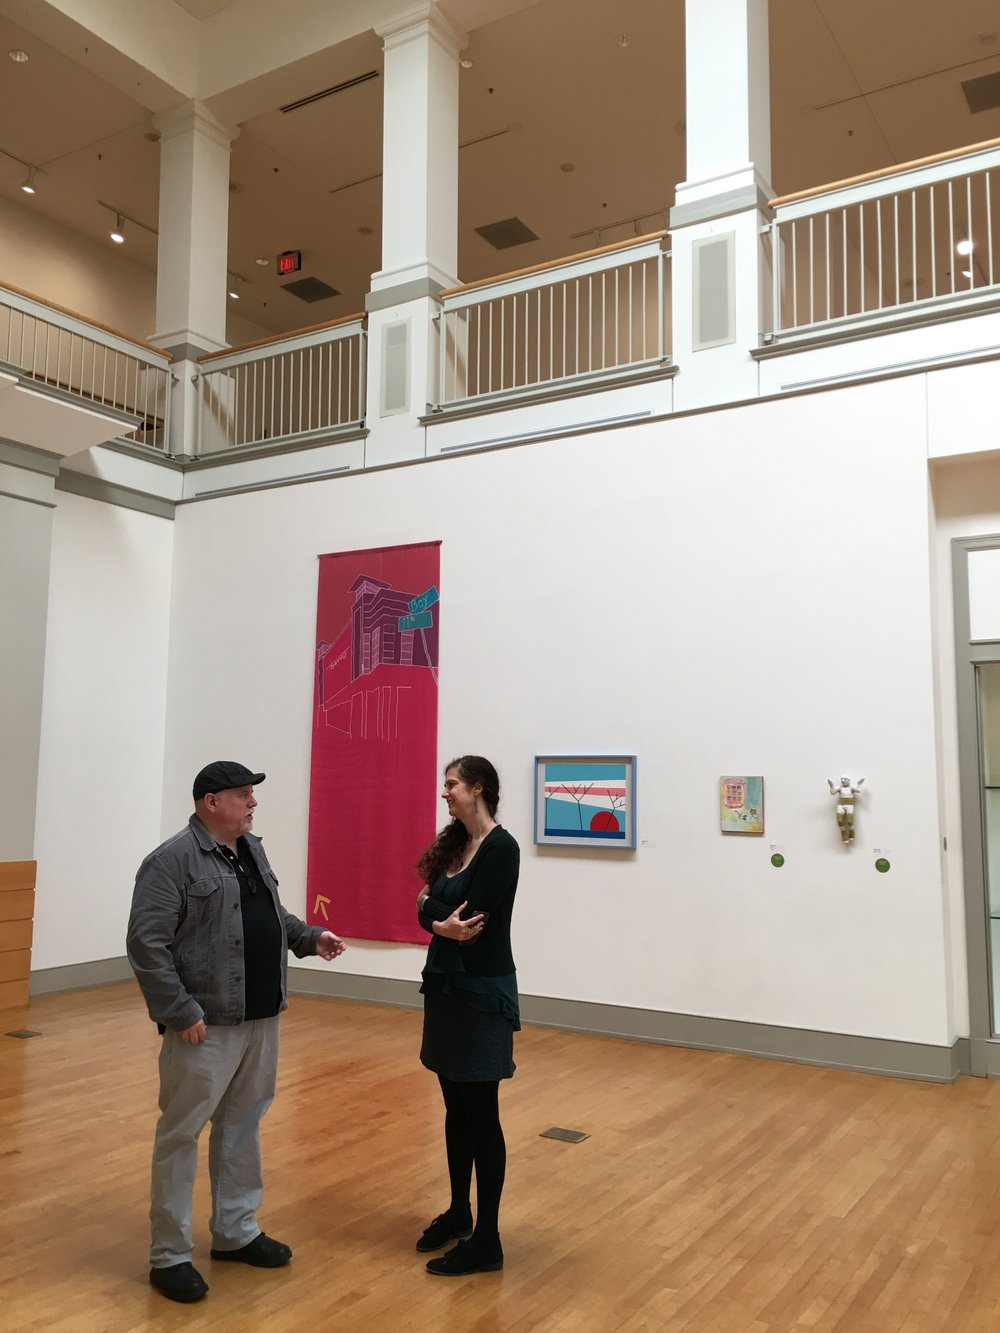 Beth Sale and Jon Biron discussing life and art at the Lyndon House Arts Center, Athens, GA USA.  We Are Here  hangs behind them